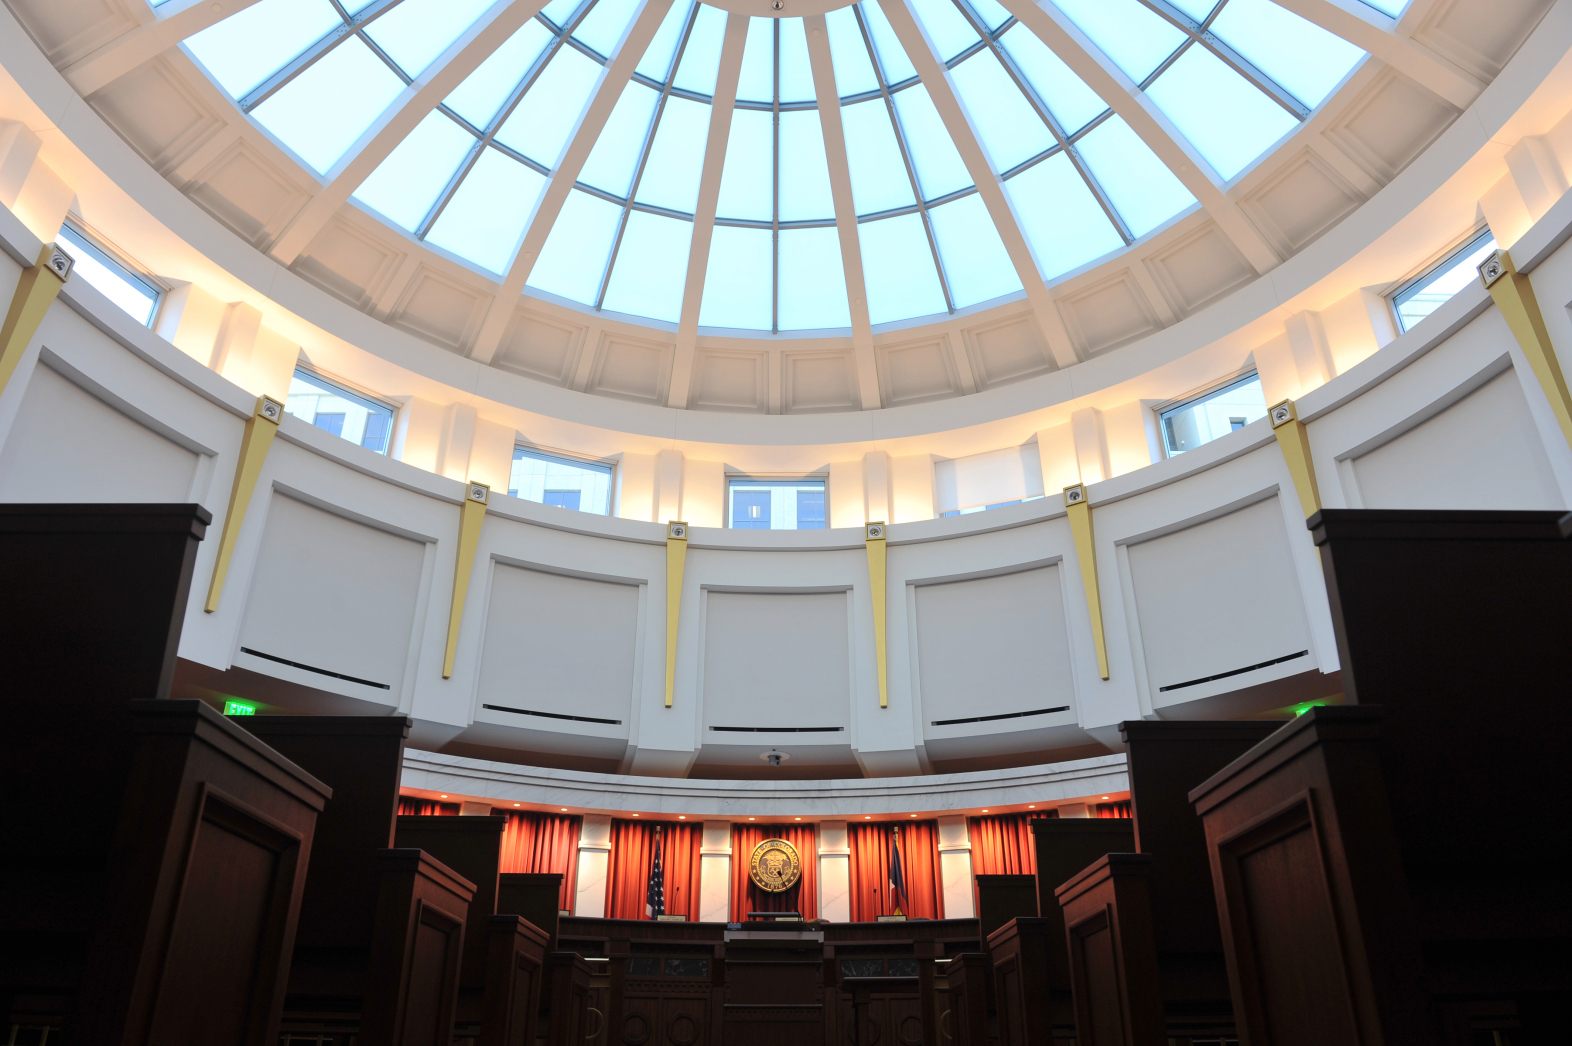 Photo shows half the ale blue glass dome and the upper level of the Colorado Supreme Court chambers at the Ralph Carr Judicial Center in Denver, Colorado.